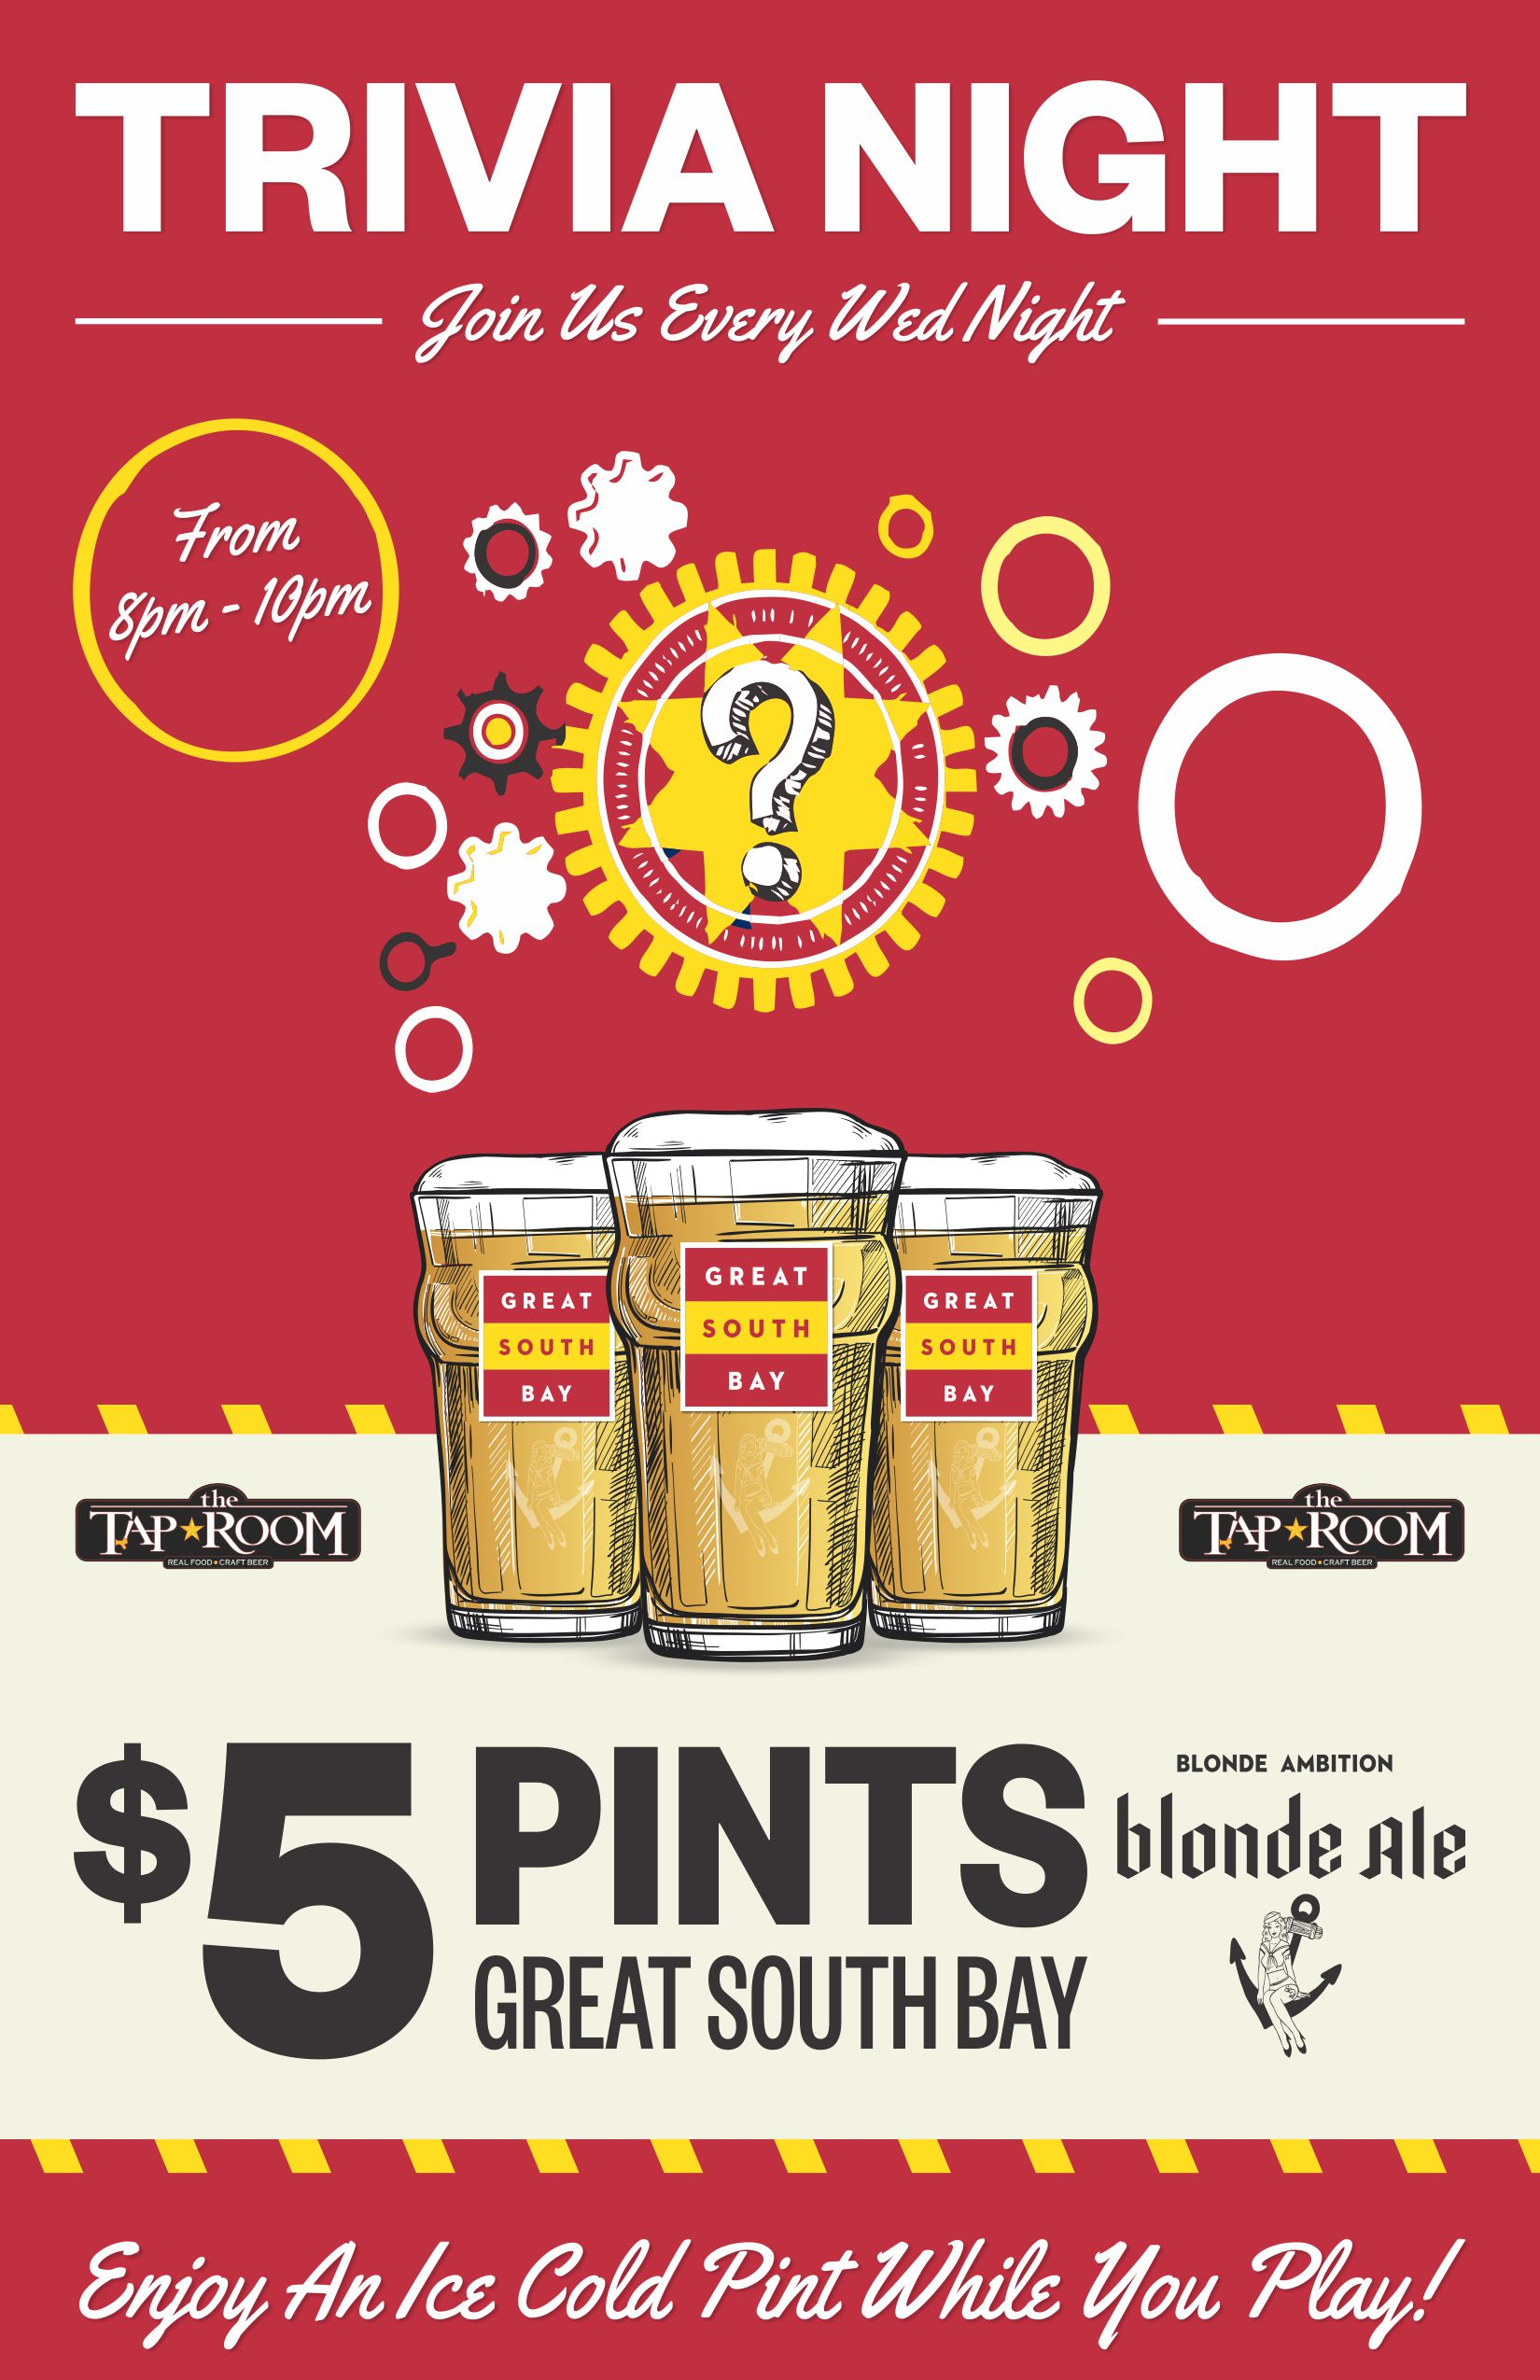 Trivia night $5 pints of great south bay